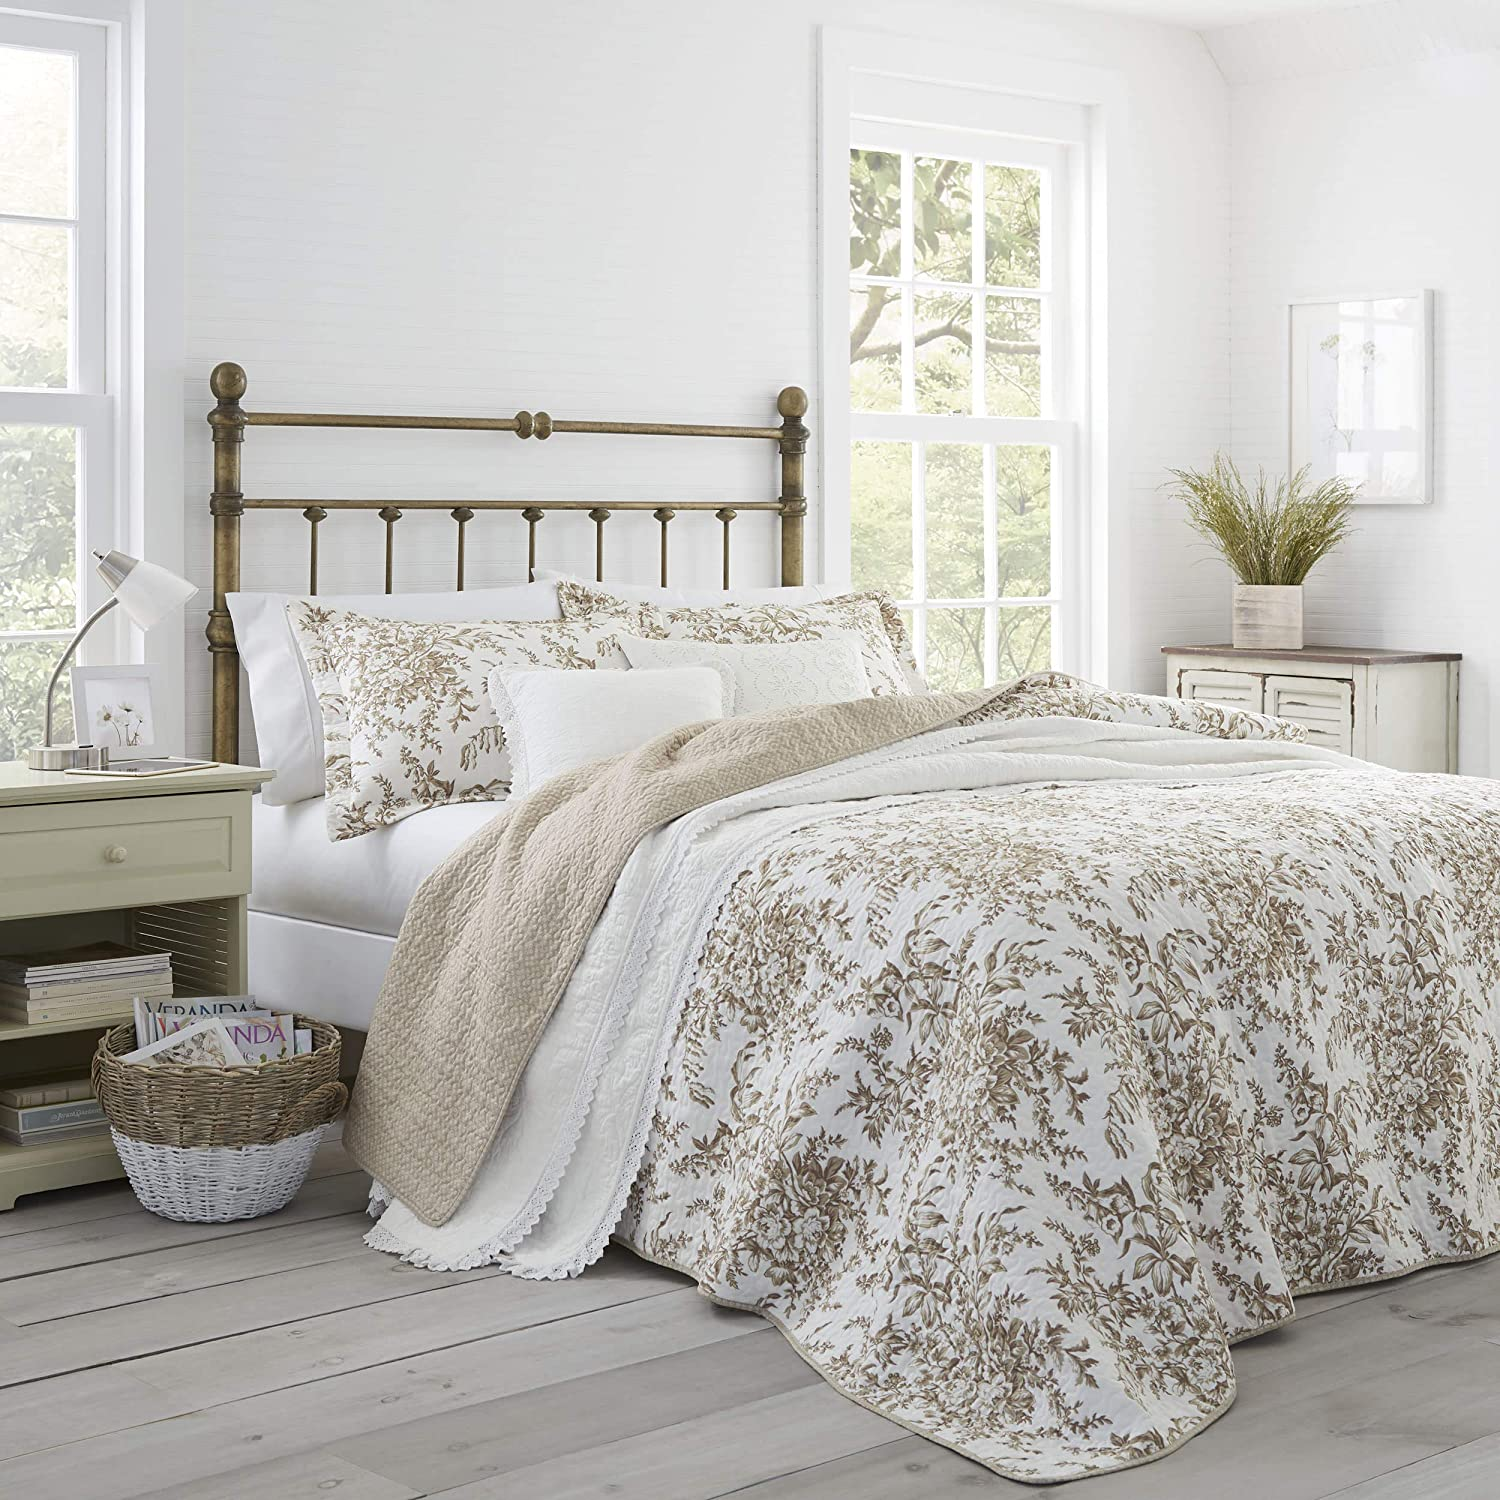 Laura Ashley Home | Bedford Collection | Luxury Premium Ultra Soft Quilt Coverlet, Comfortable 3 Piece Bedding Set, All Season Stylish Bedspread, Full/Queen, Mocha